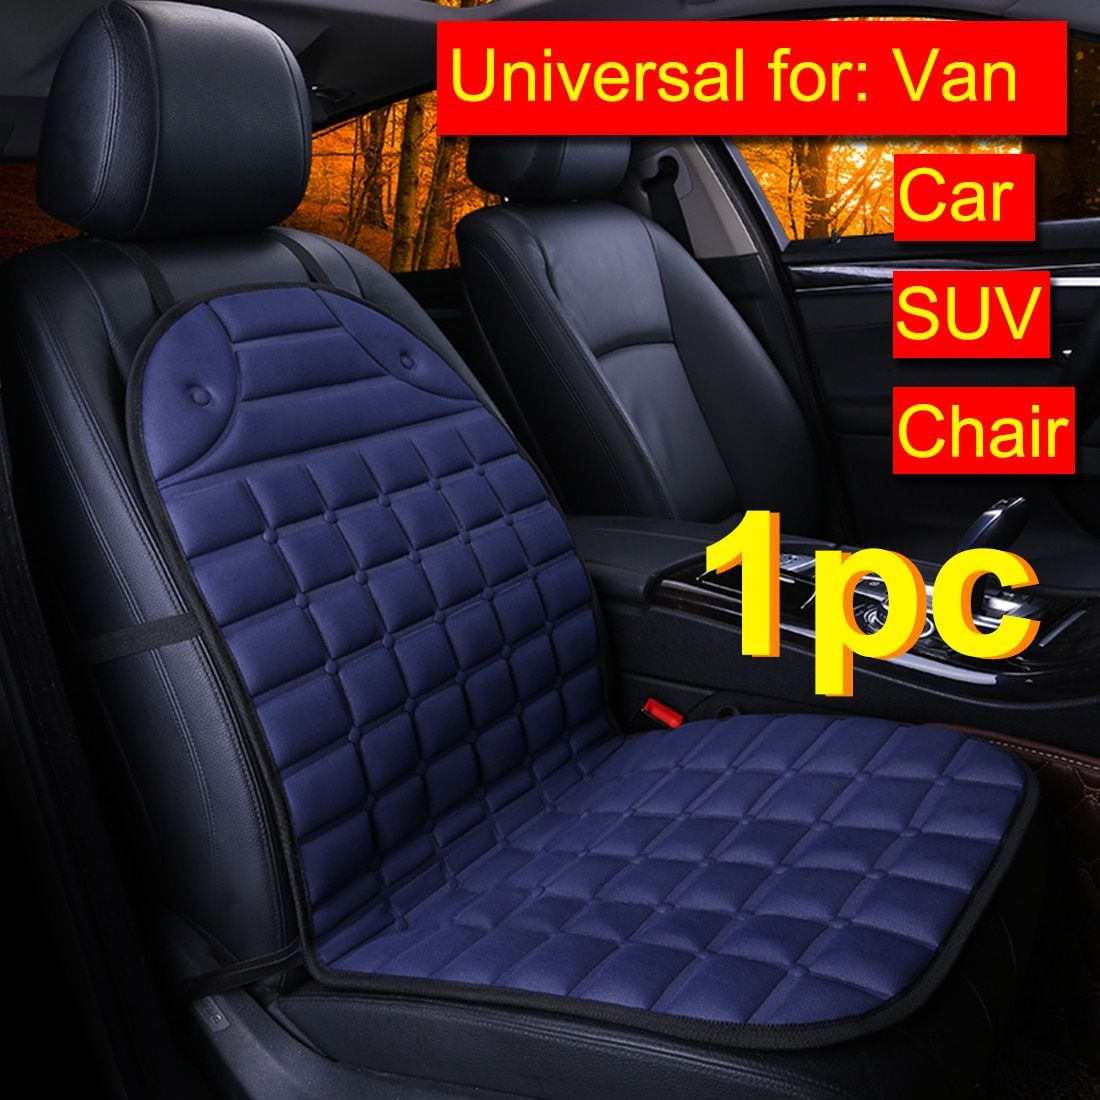 Dewtreetali 1pc Universal Car Seat Cover Plaid Front Seat Cover Winter Warm Household Cushion Pad For Van Truck For Car Seats Heated Car Seat Covers Winter Car